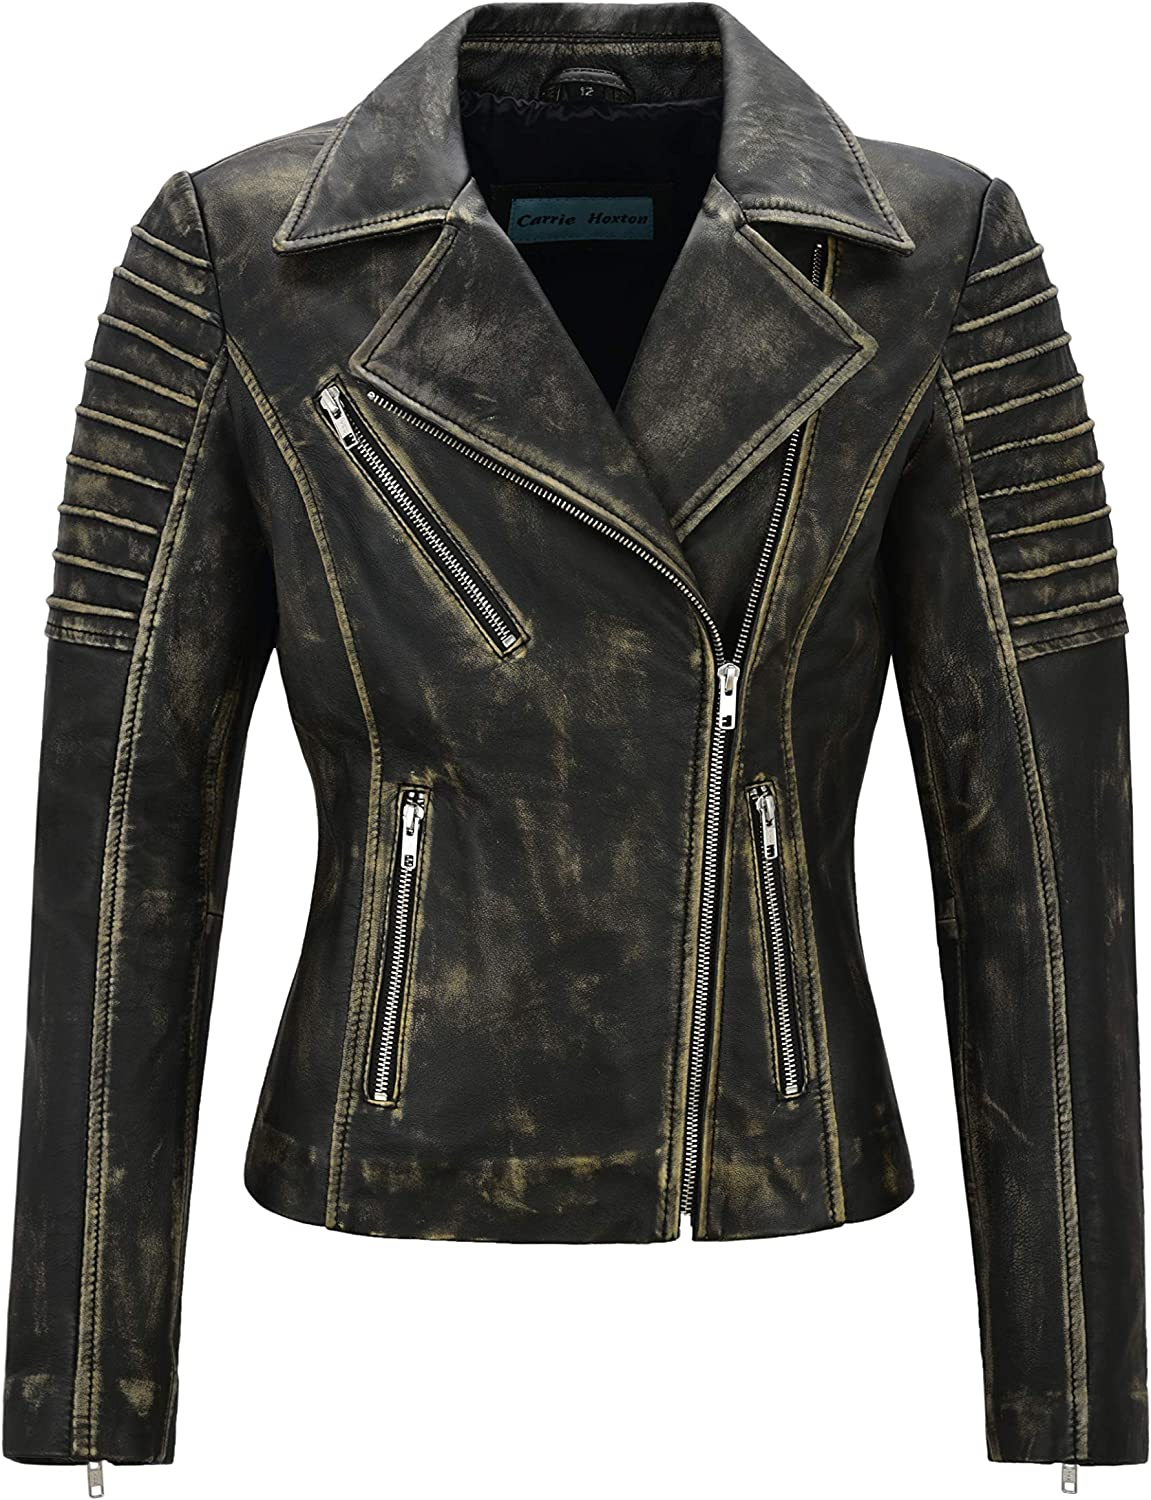 Carrie CH Hoxton Women's Leather Jacket Fashion Design Black Rust Beige Vintage Lambskin Biker Style 9334